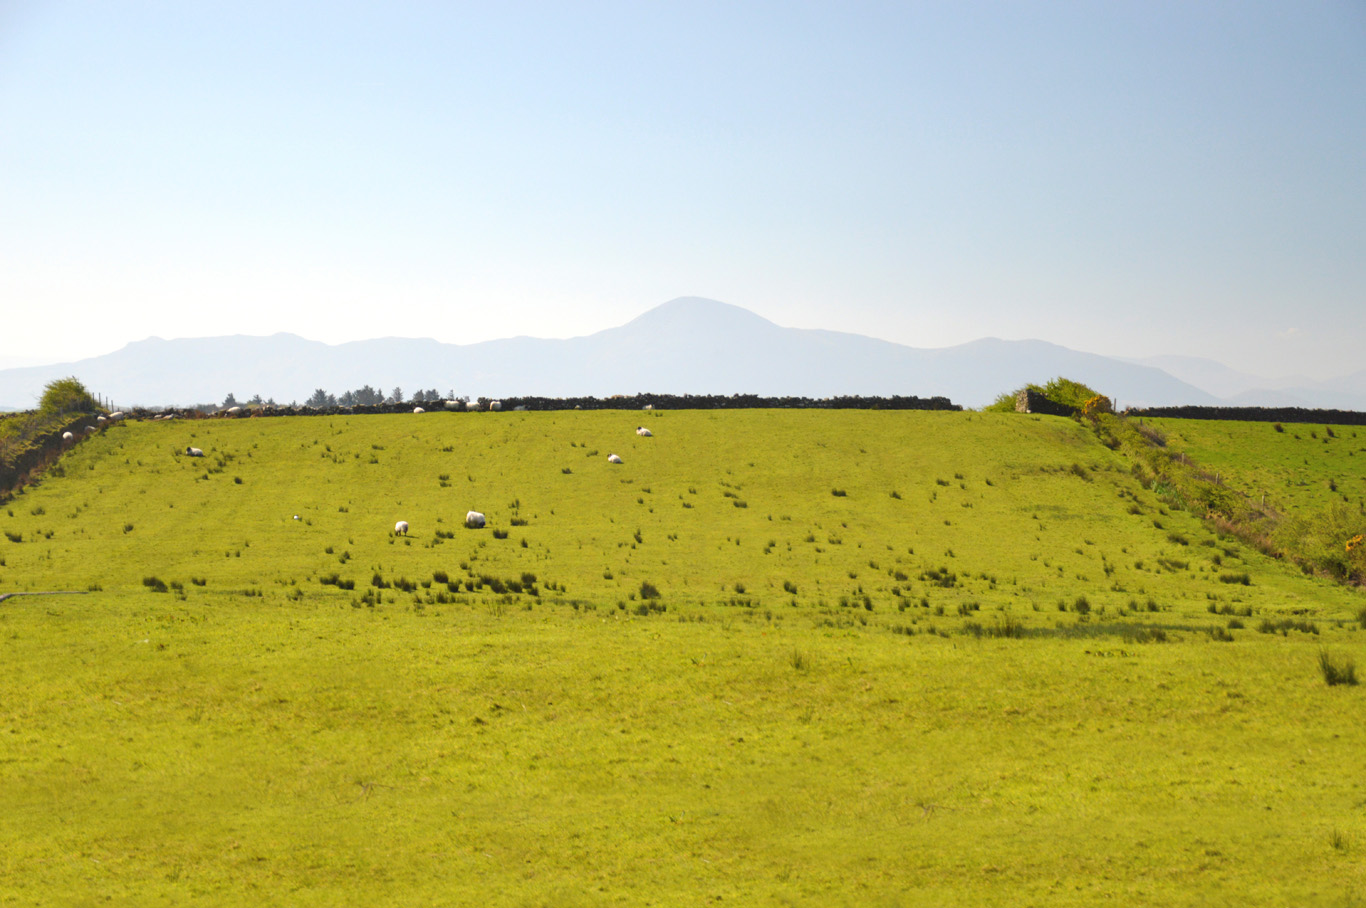 Green fields with sheep